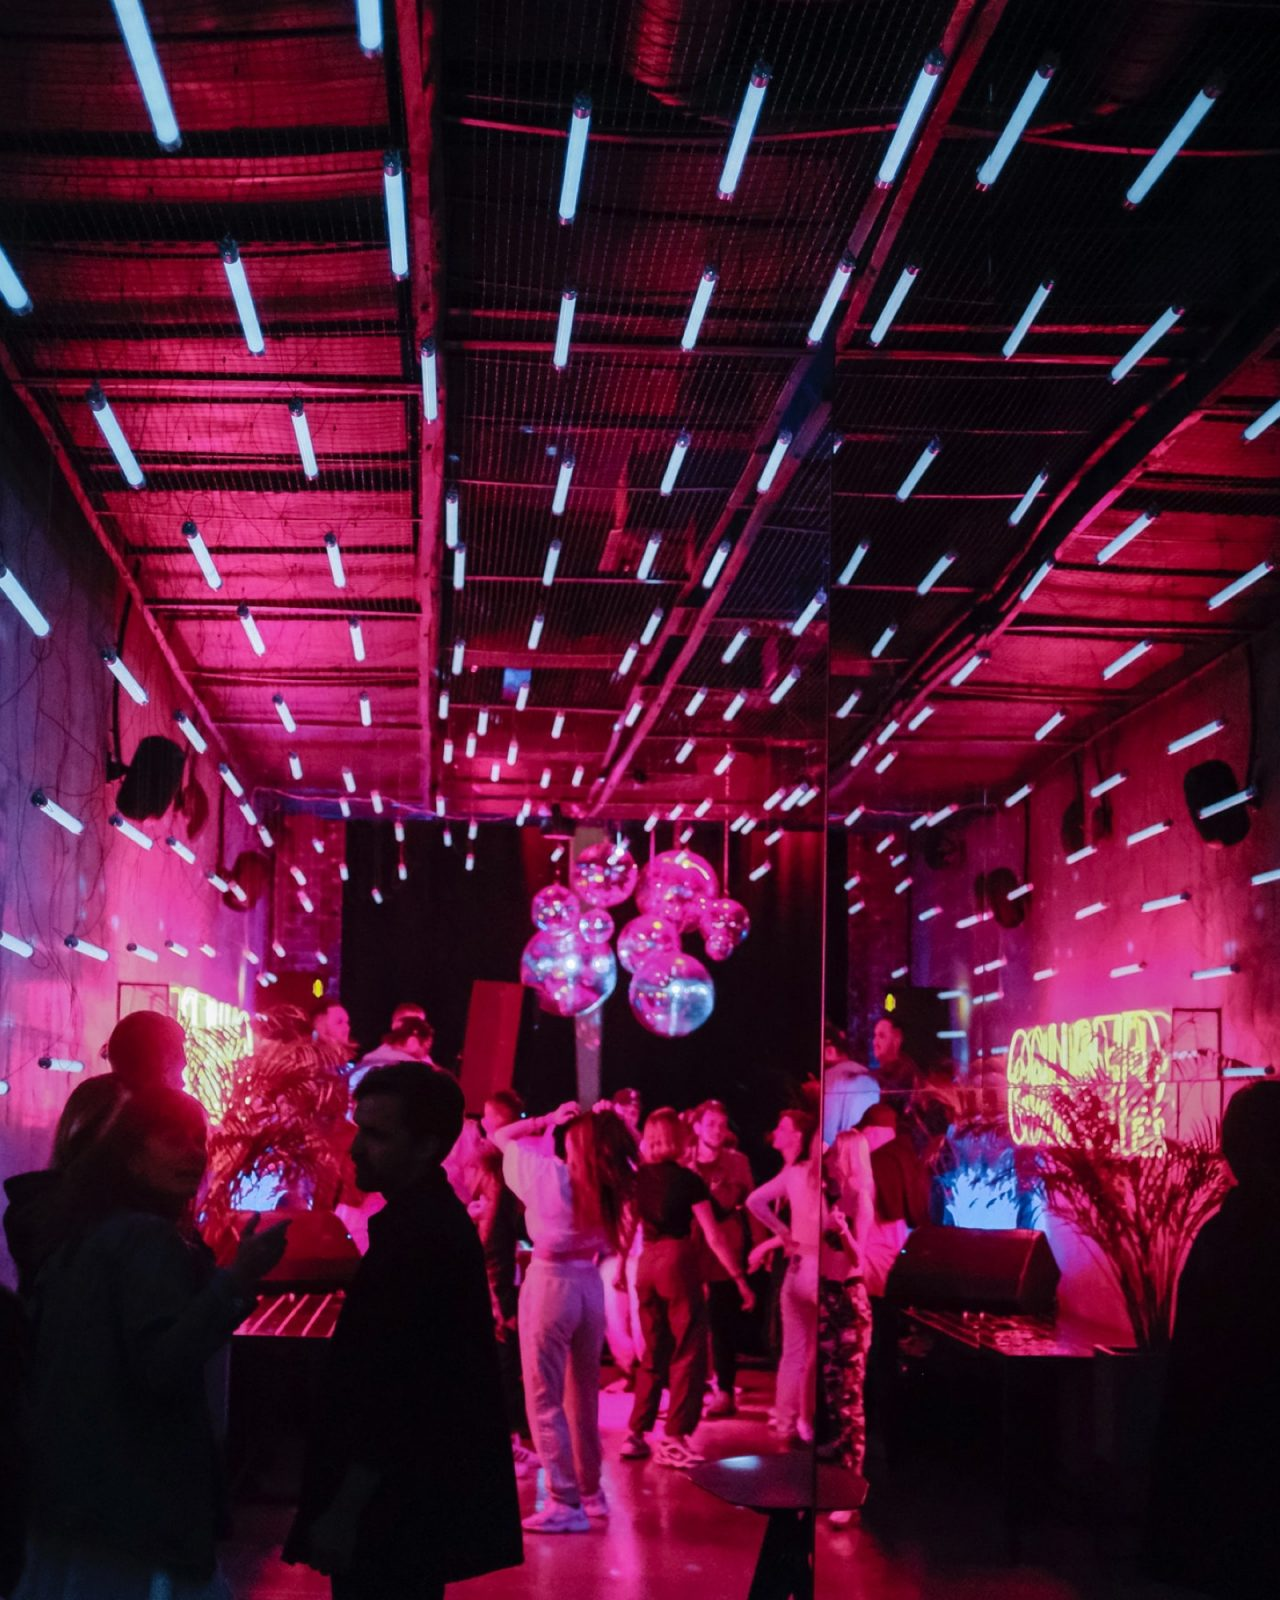 People dancing at a night club with disco balls and pink neon lights